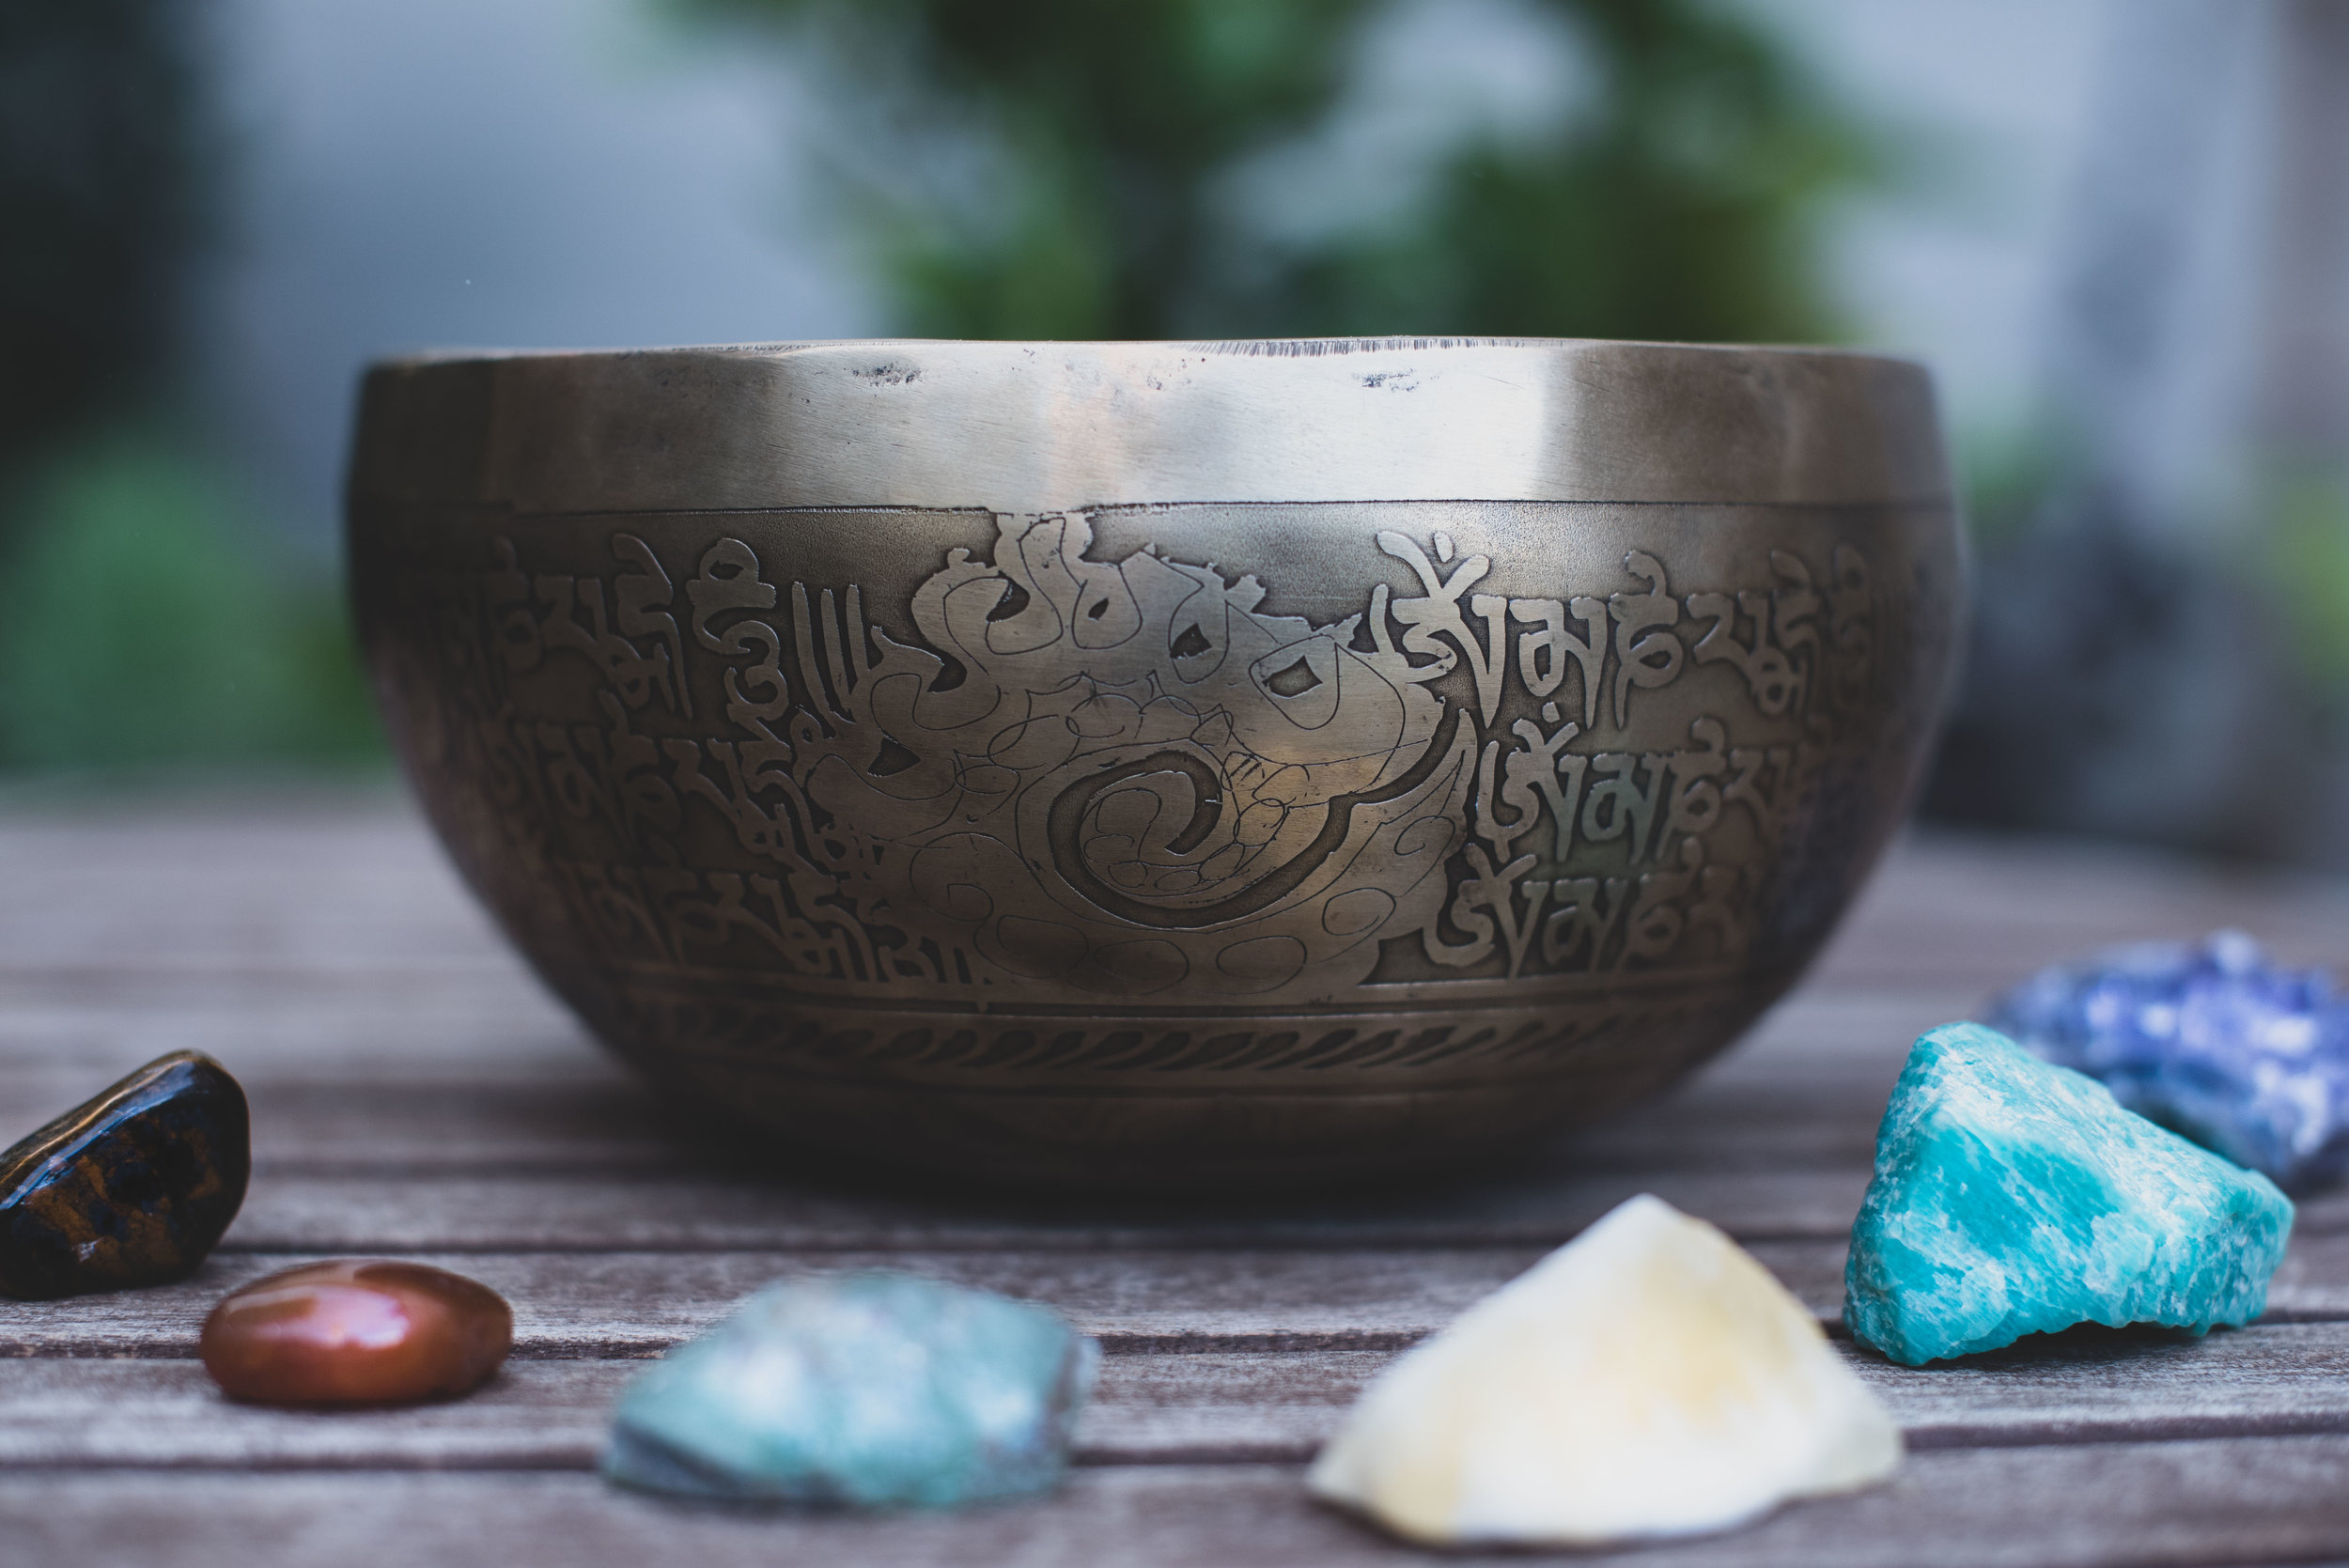 Image and Article by Mark Carter of Zen Soul Balance.